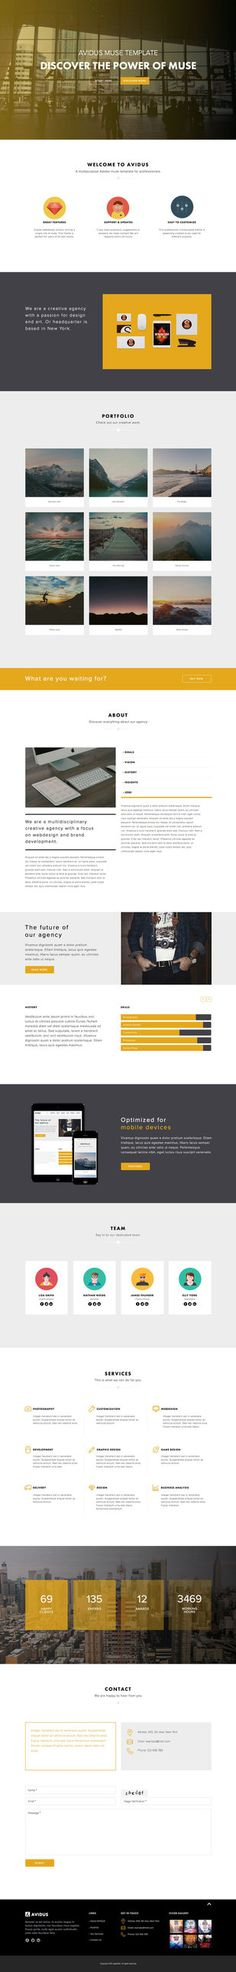 Free Adobe Muse Template Website Templates \u2013 malabarcoast